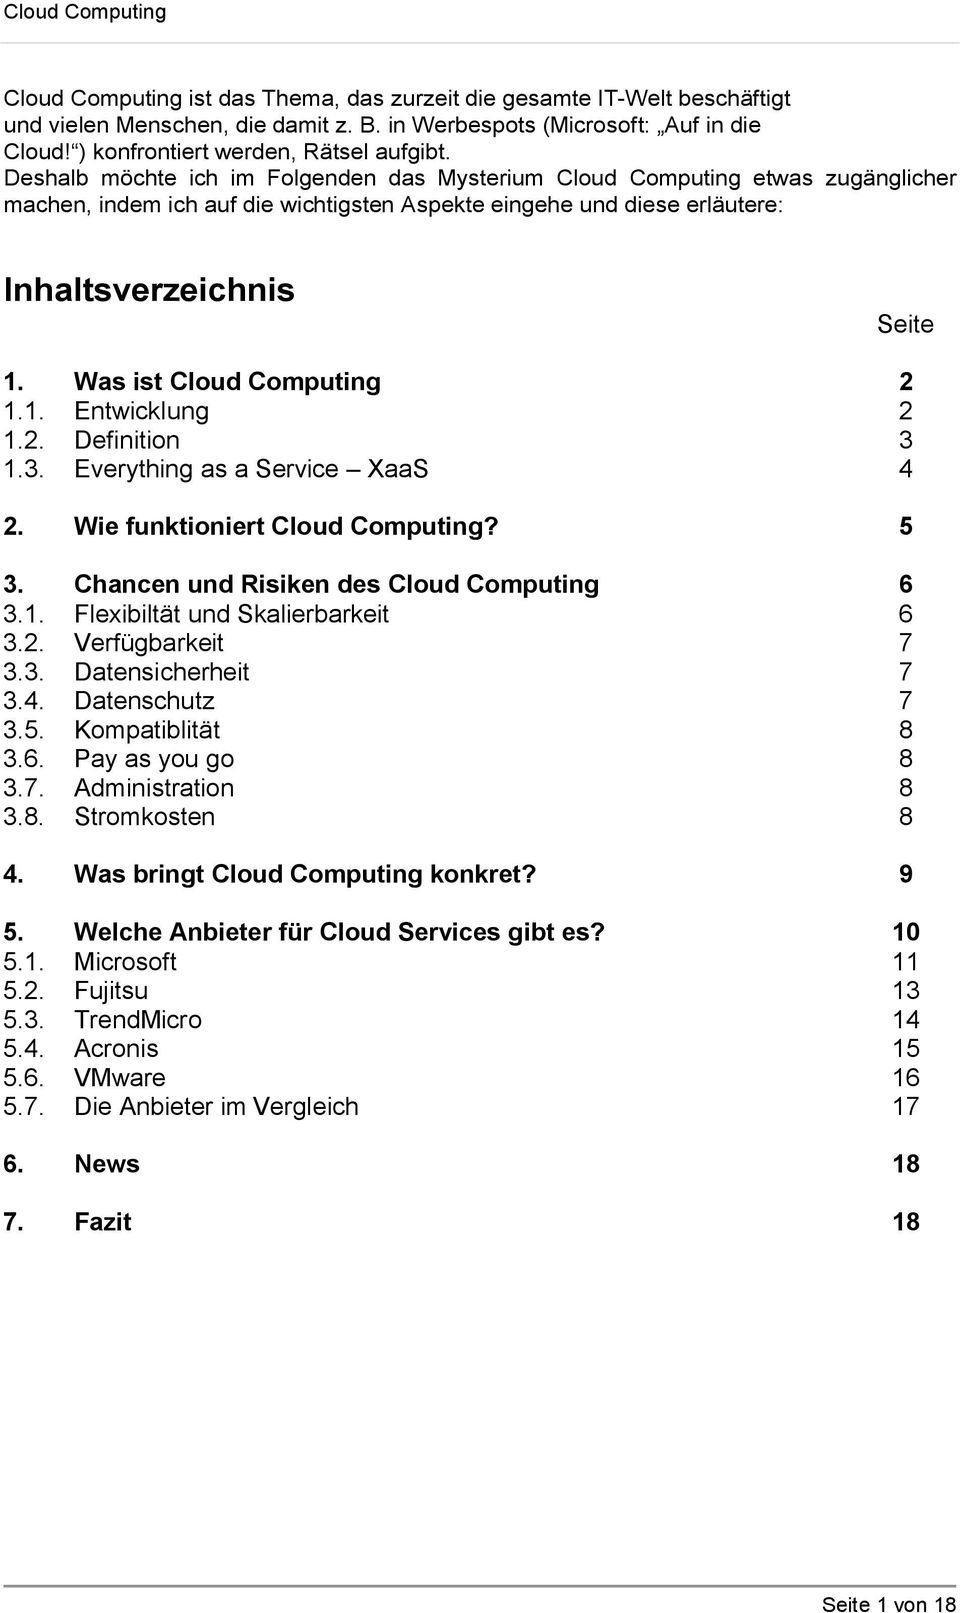 Was ist Cloud Computing 2 1.1. Entwicklung 2 1.2. Definition 3 1.3. Everything as a Service XaaS 4 2. Wie funktioniert Cloud Computing? 5 3. Chancen und Risiken des Cloud Computing 6 3.1. Flexibiltät und Skalierbarkeit 6 3.